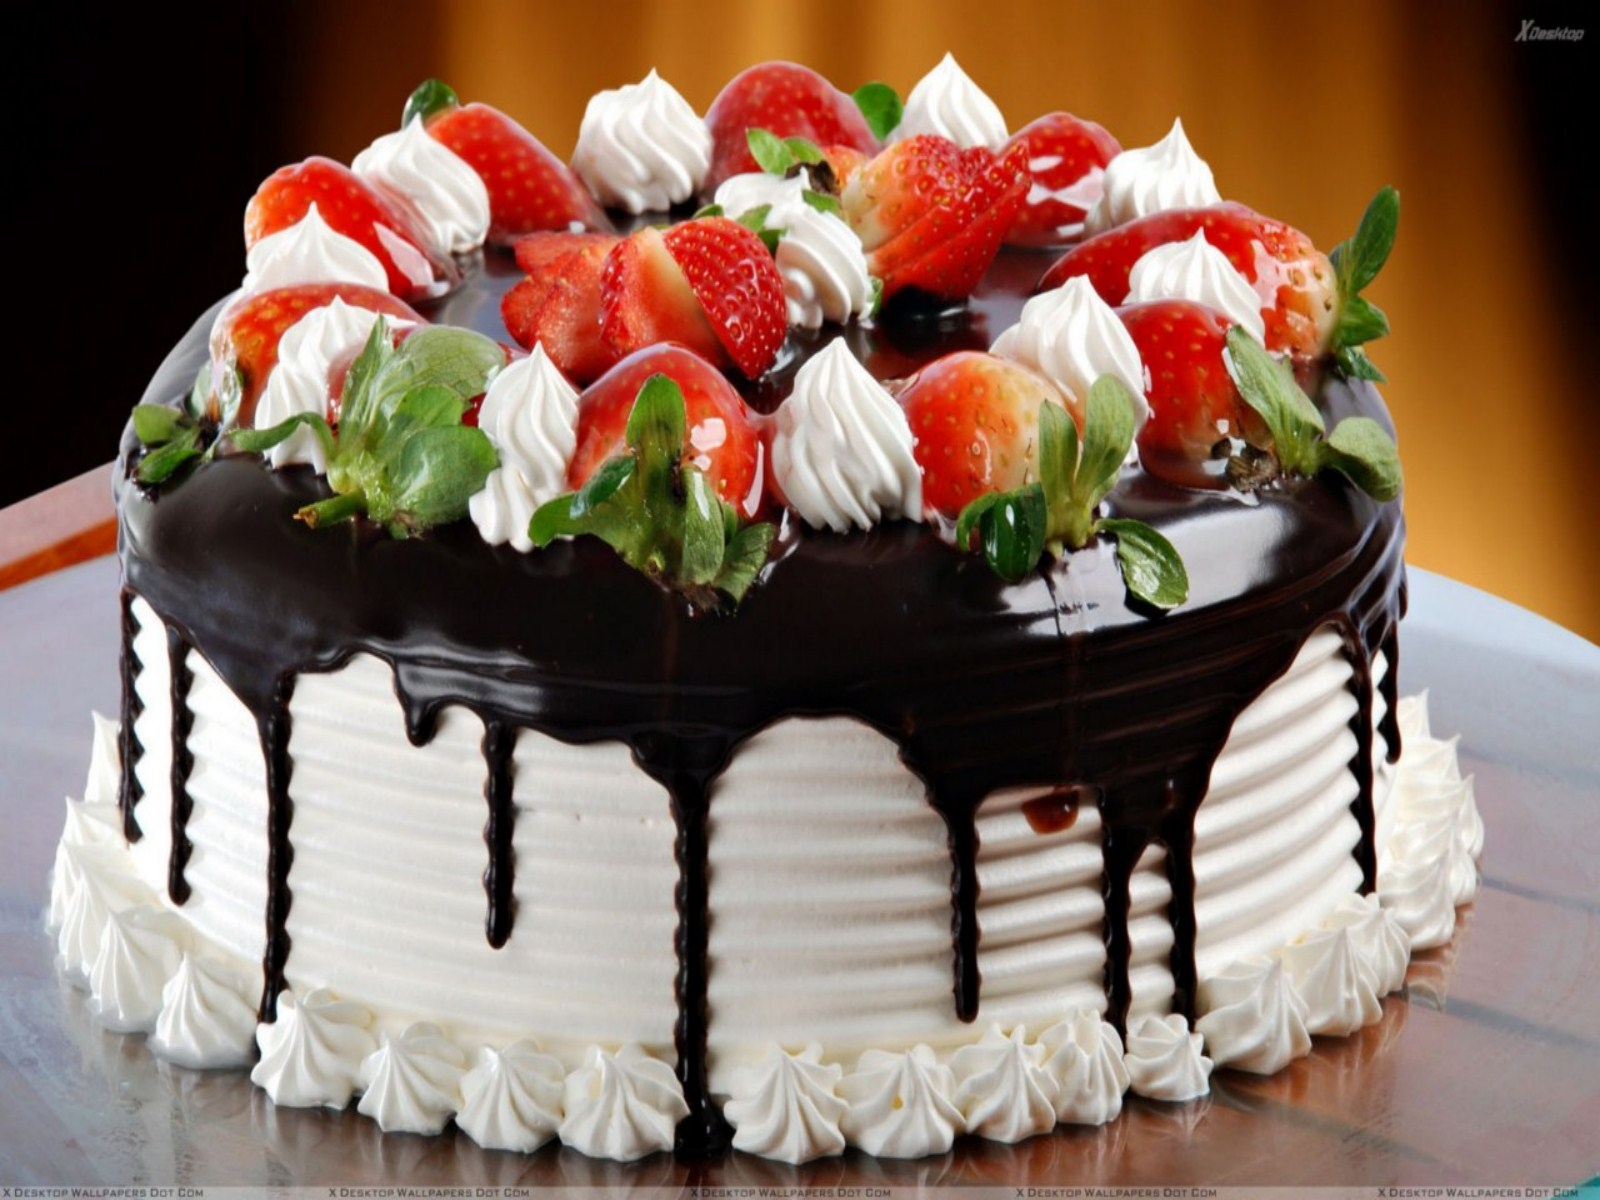 http://3.bp.blogspot.com/-KecbHEhUOuQ/UOSUxiPvmiI/AAAAAAAALUo/GVSSCuPLazs/s1600/birthday_cake_for_friends_wallpaper-other.jpg